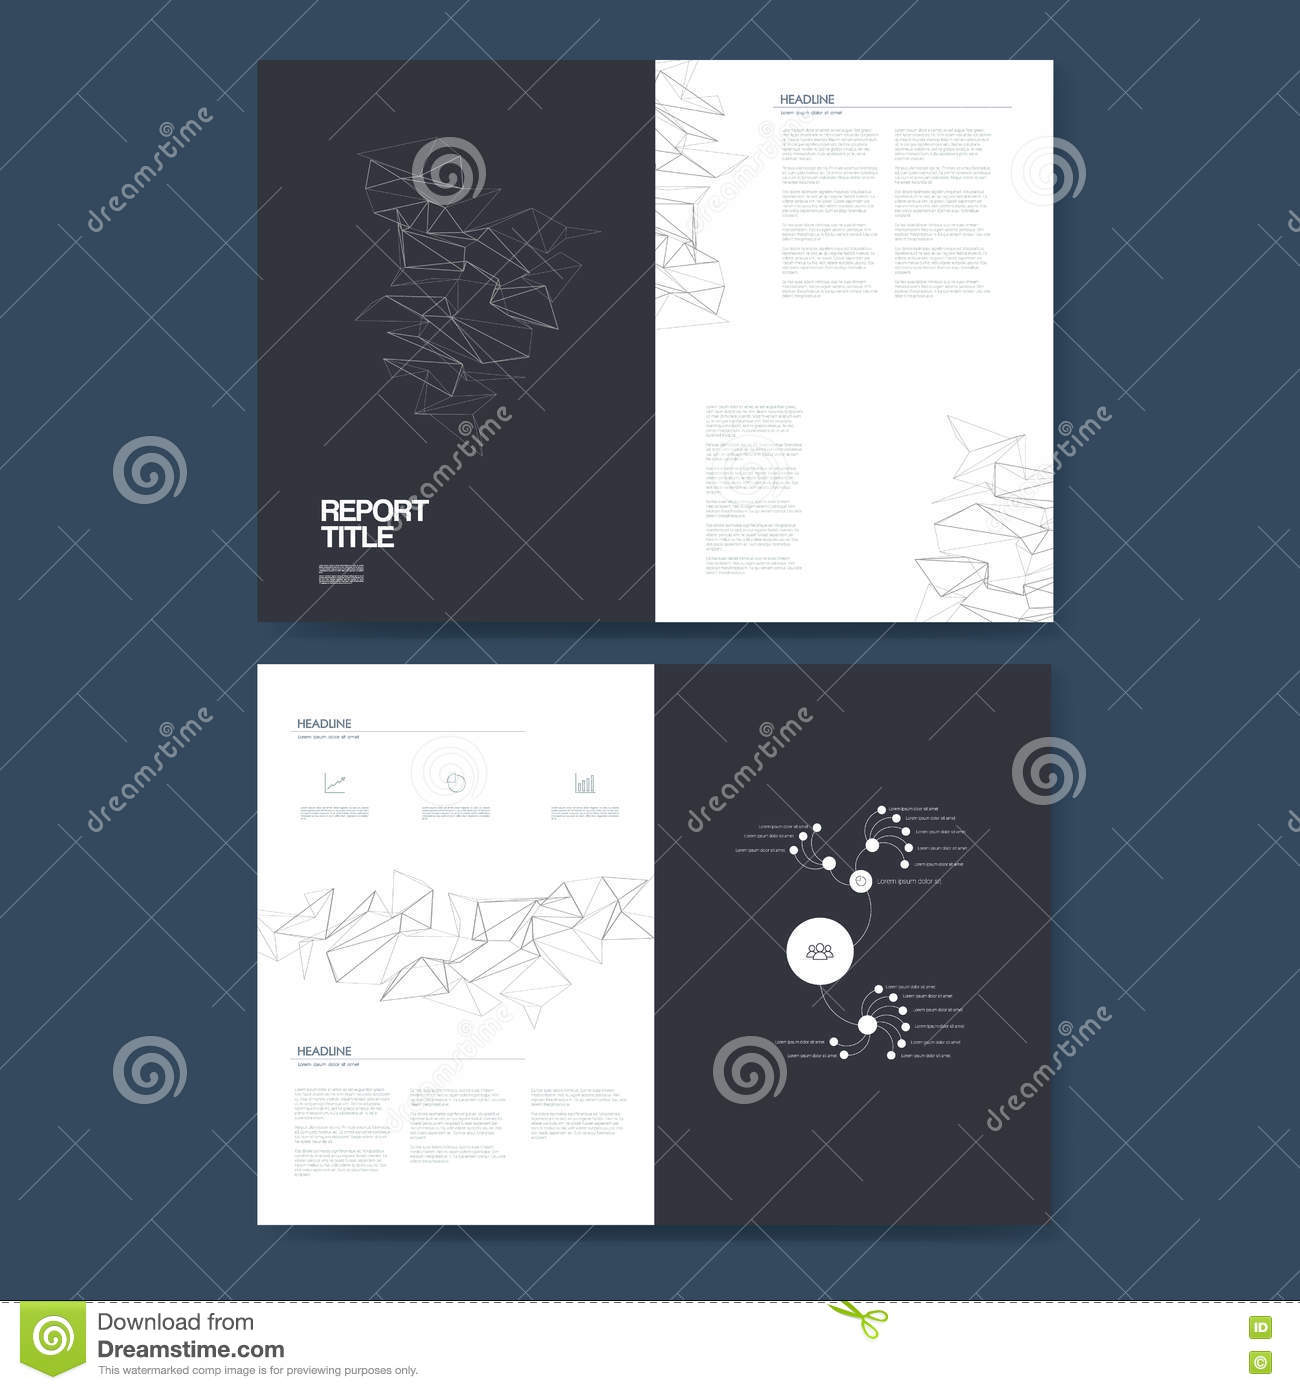 Business report template with infographics elements for company royalty free vector download business report template wajeb Choice Image